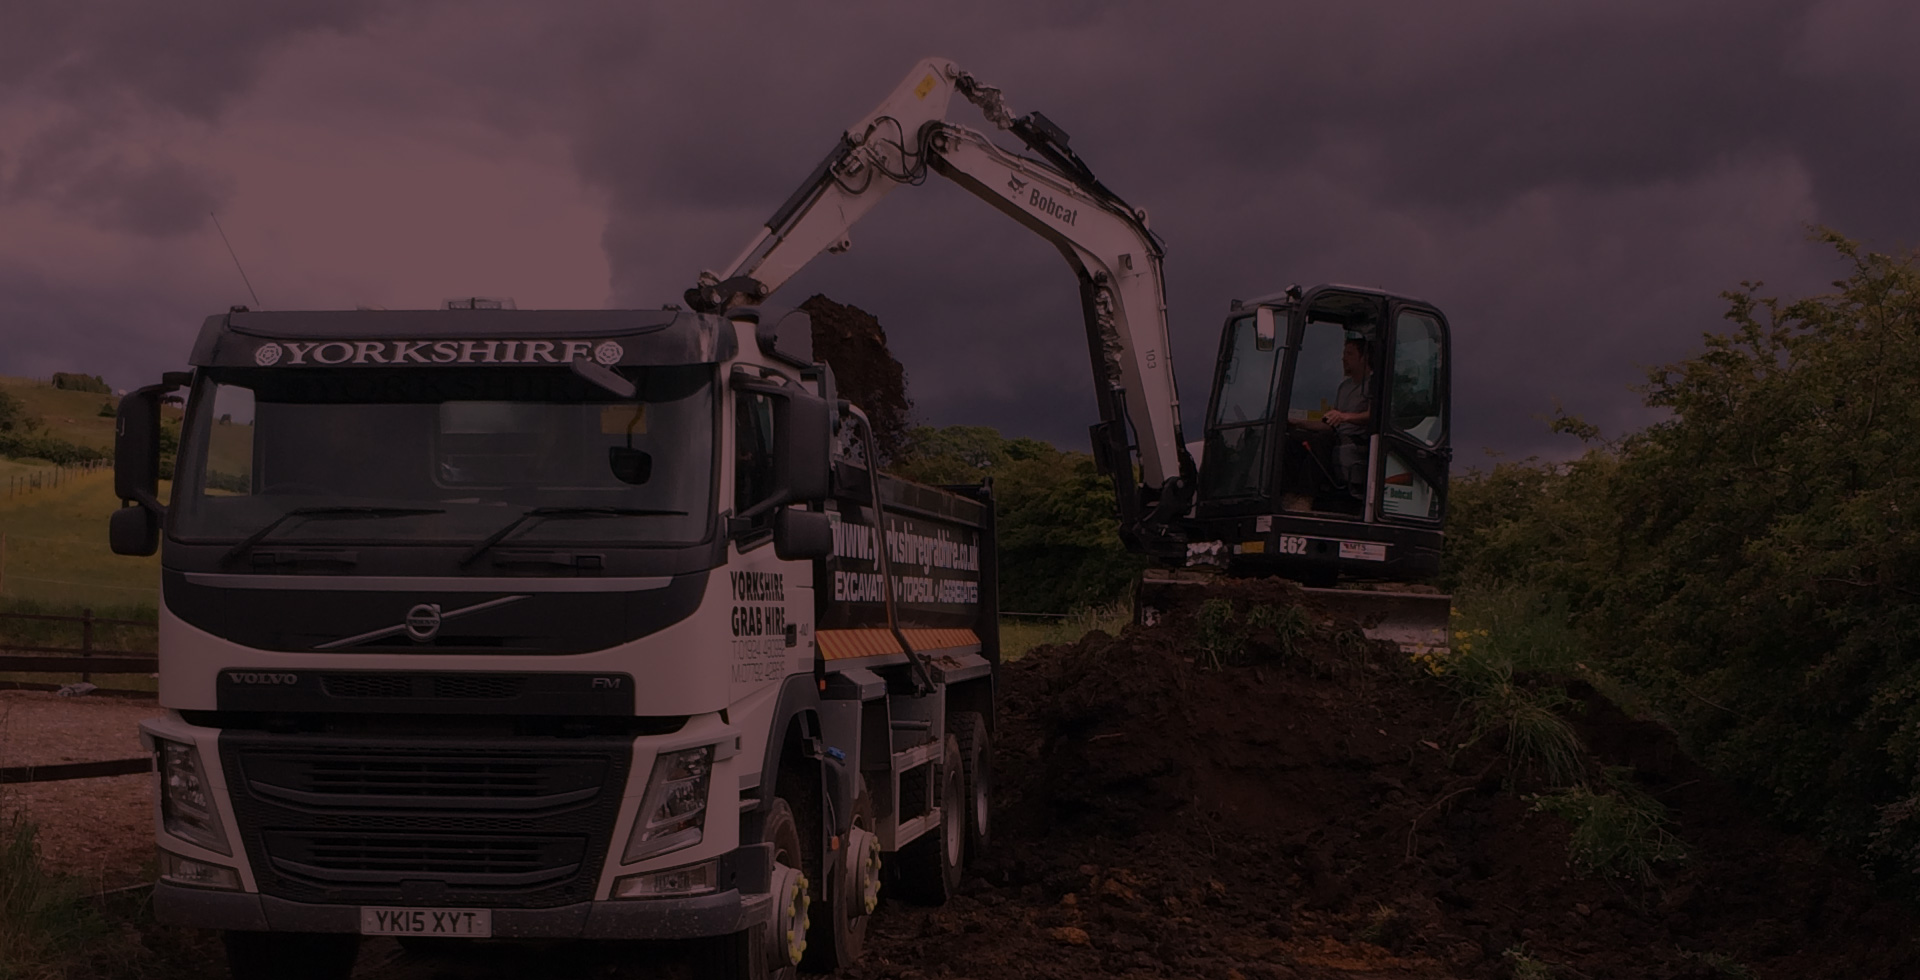 We can provide Type 1 and Type 2 crushed concrete, road planings and other aggregates. These are good for Roads, Footpaths, Car parks, Driveways, Building bases, Hard standings and more from Yorkshire Grab Hire